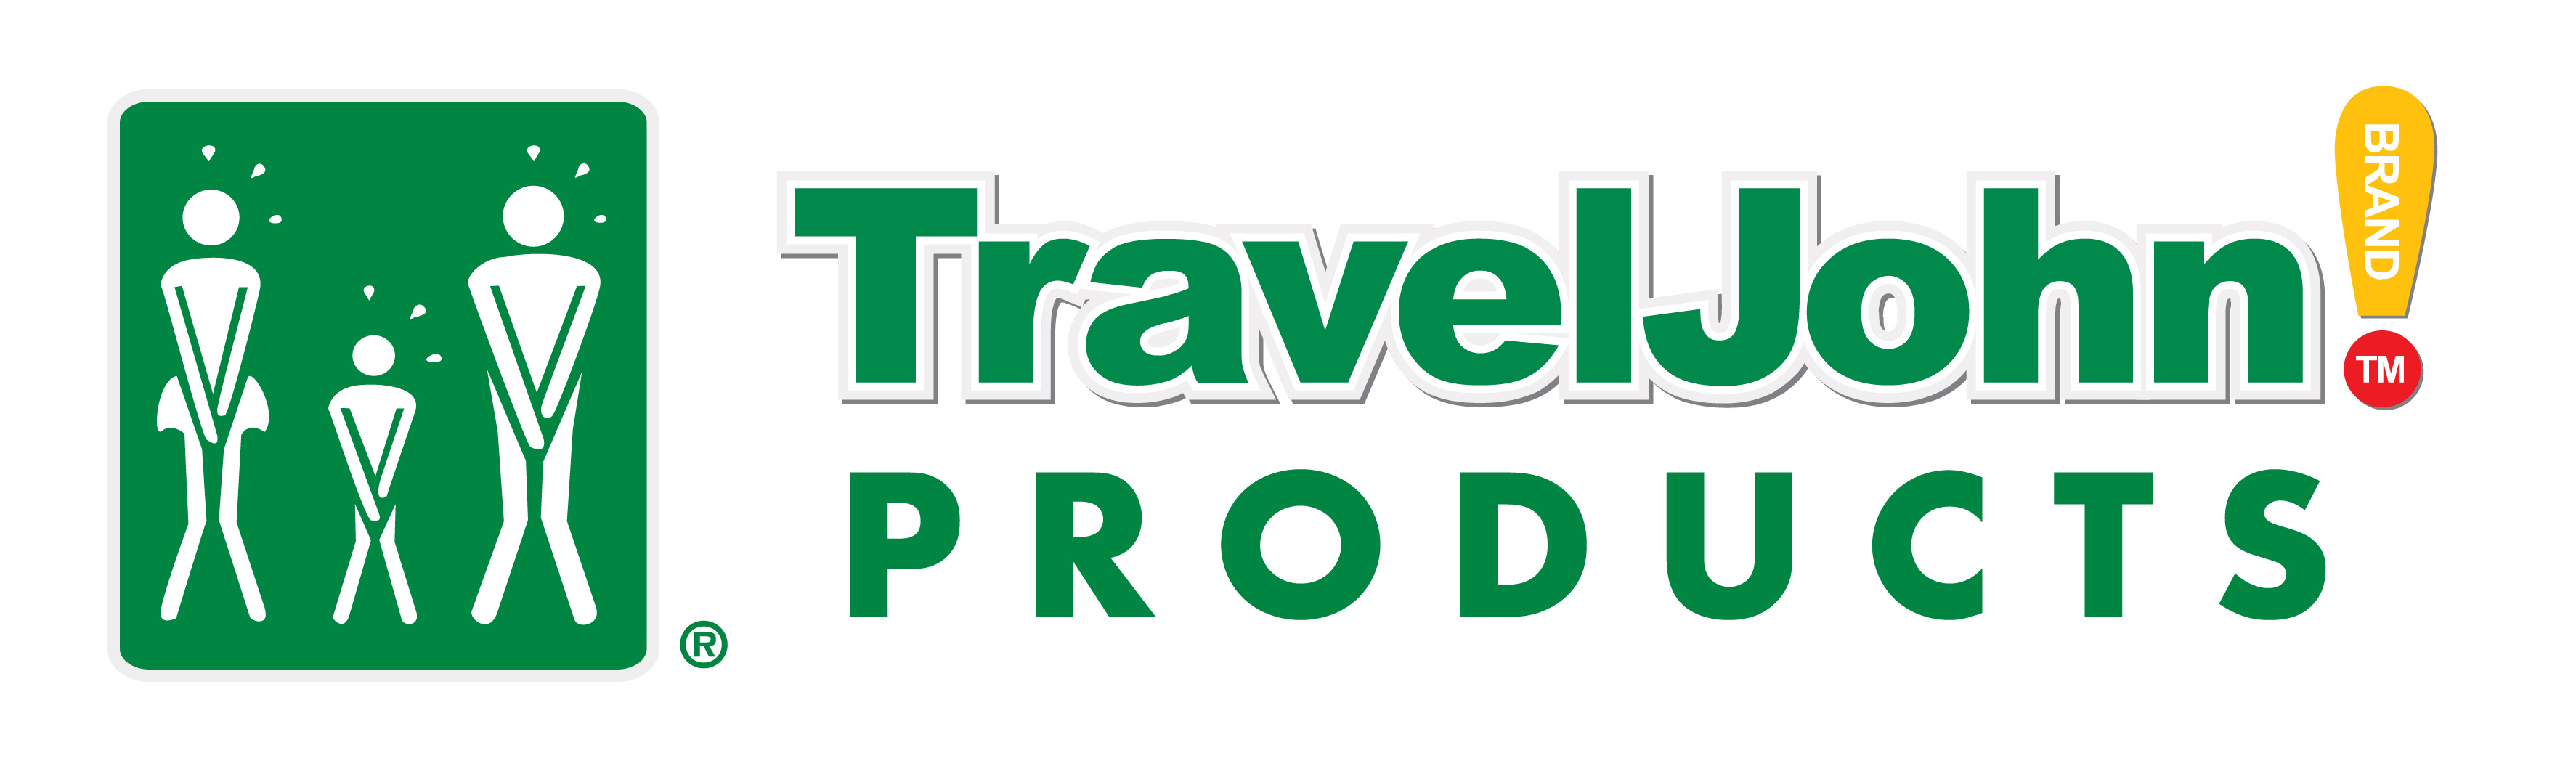 TravelJohn Products